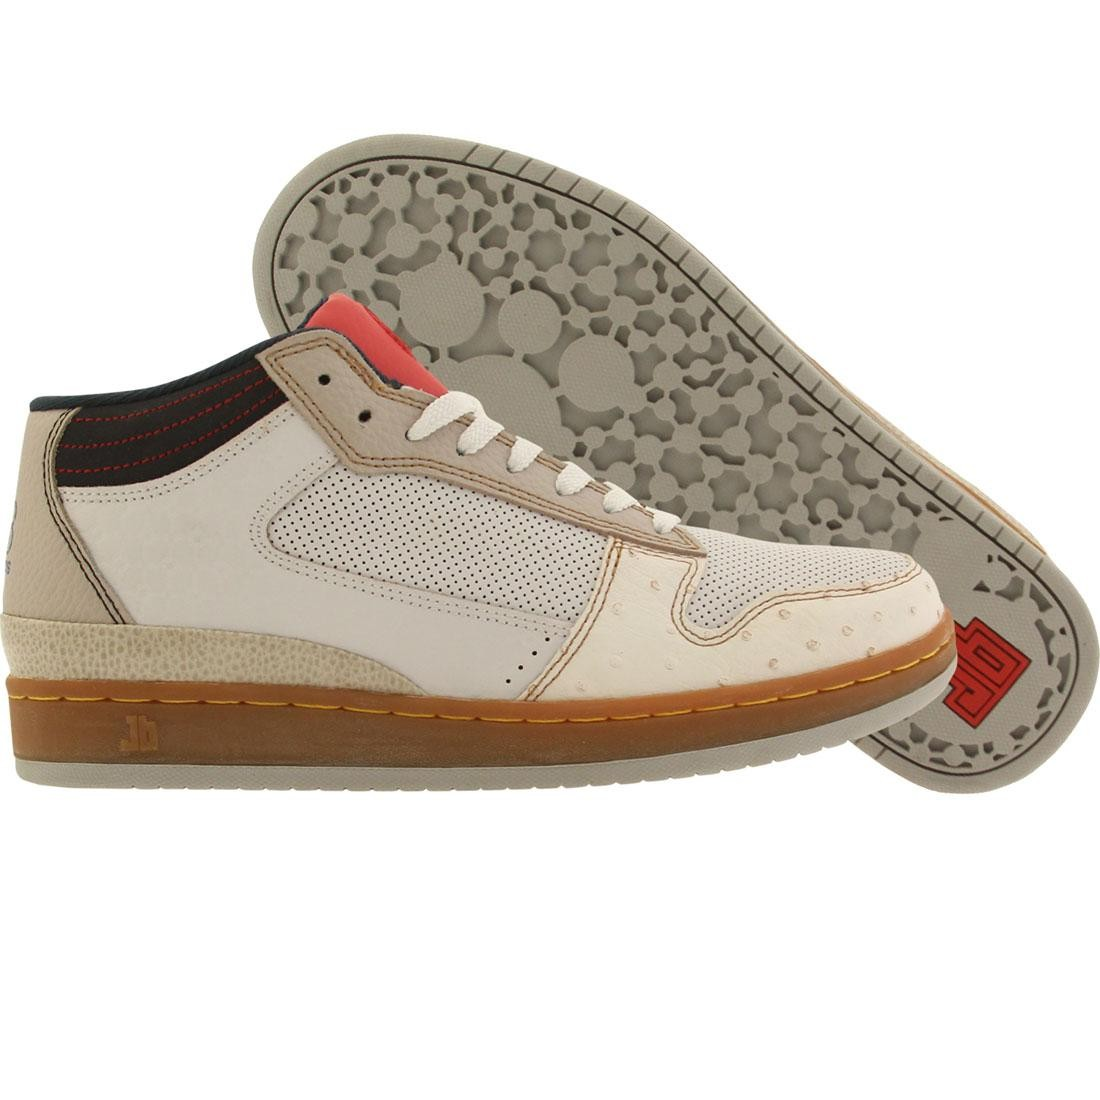 JB Classics Getlo Mid - Navies West (powder / taupe / red)